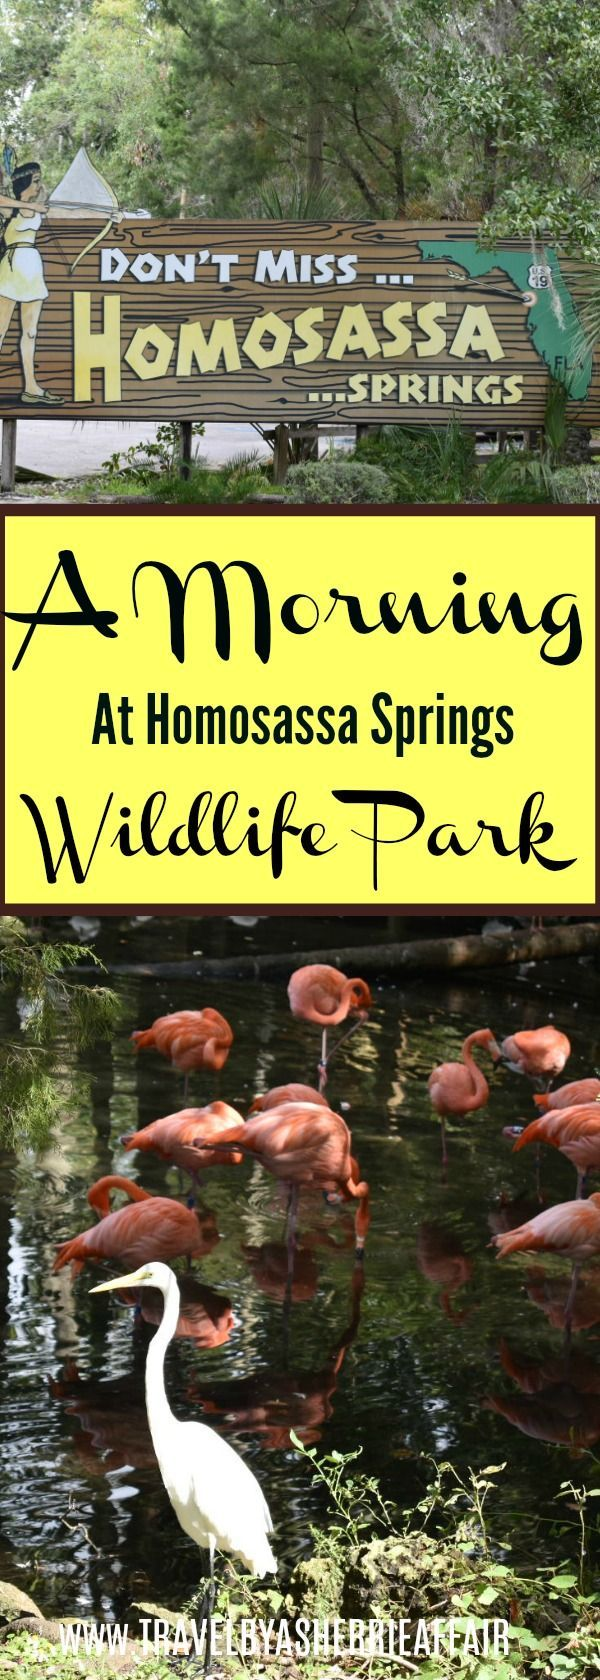 The Homosassa Wildlife Park has so much to see. There are Manatees, Florida Panther, Wolves, Bobcats, Black Bear, Birds and more.  A great place to take the kids in Florida!  The Gulfcoasts own wildlife park!  #Florida #travel #manatees #park #wildlife